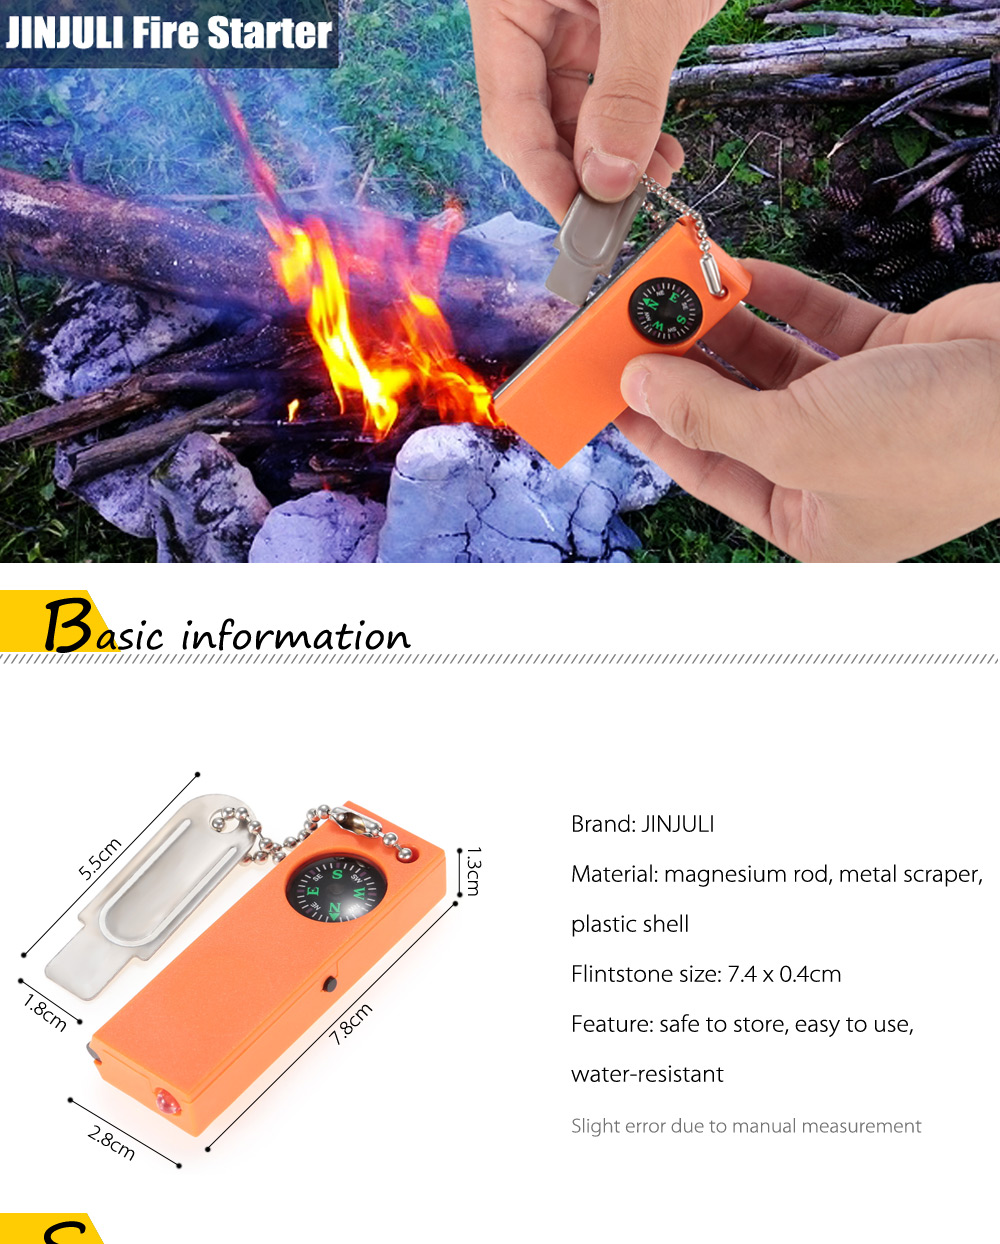 JINJULI Multi-use Magnesium Fire Starter with Compass / LED Light for Outdoor Survival